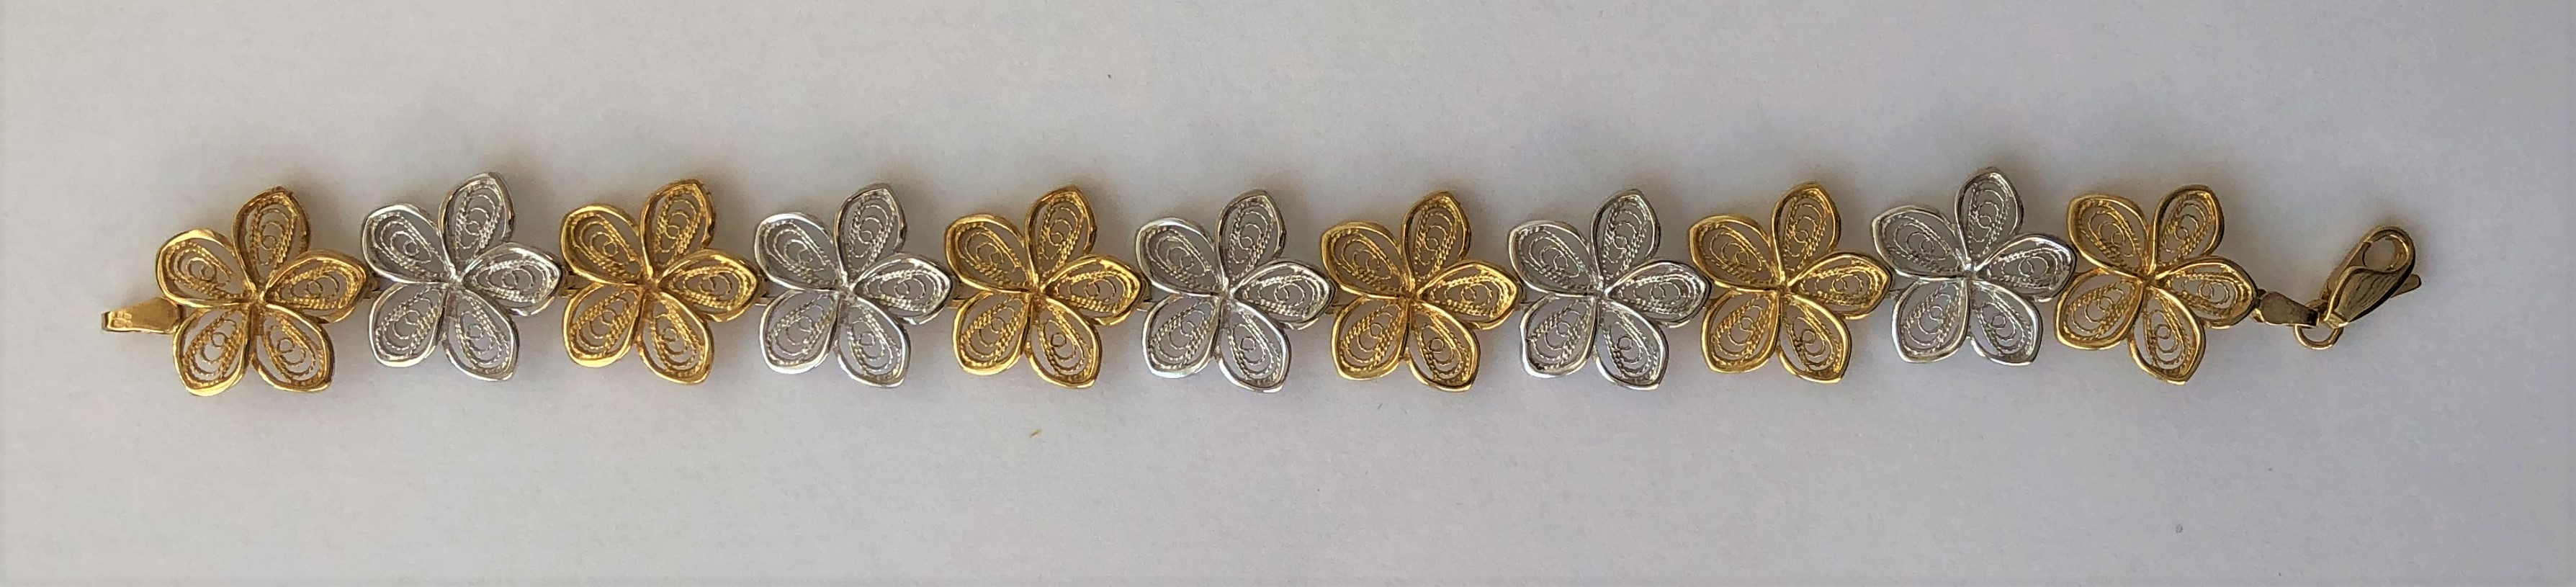 Lot 232 - 9CT YELLOW AND WHITE GOLD FILIGREE BRACELET 12.